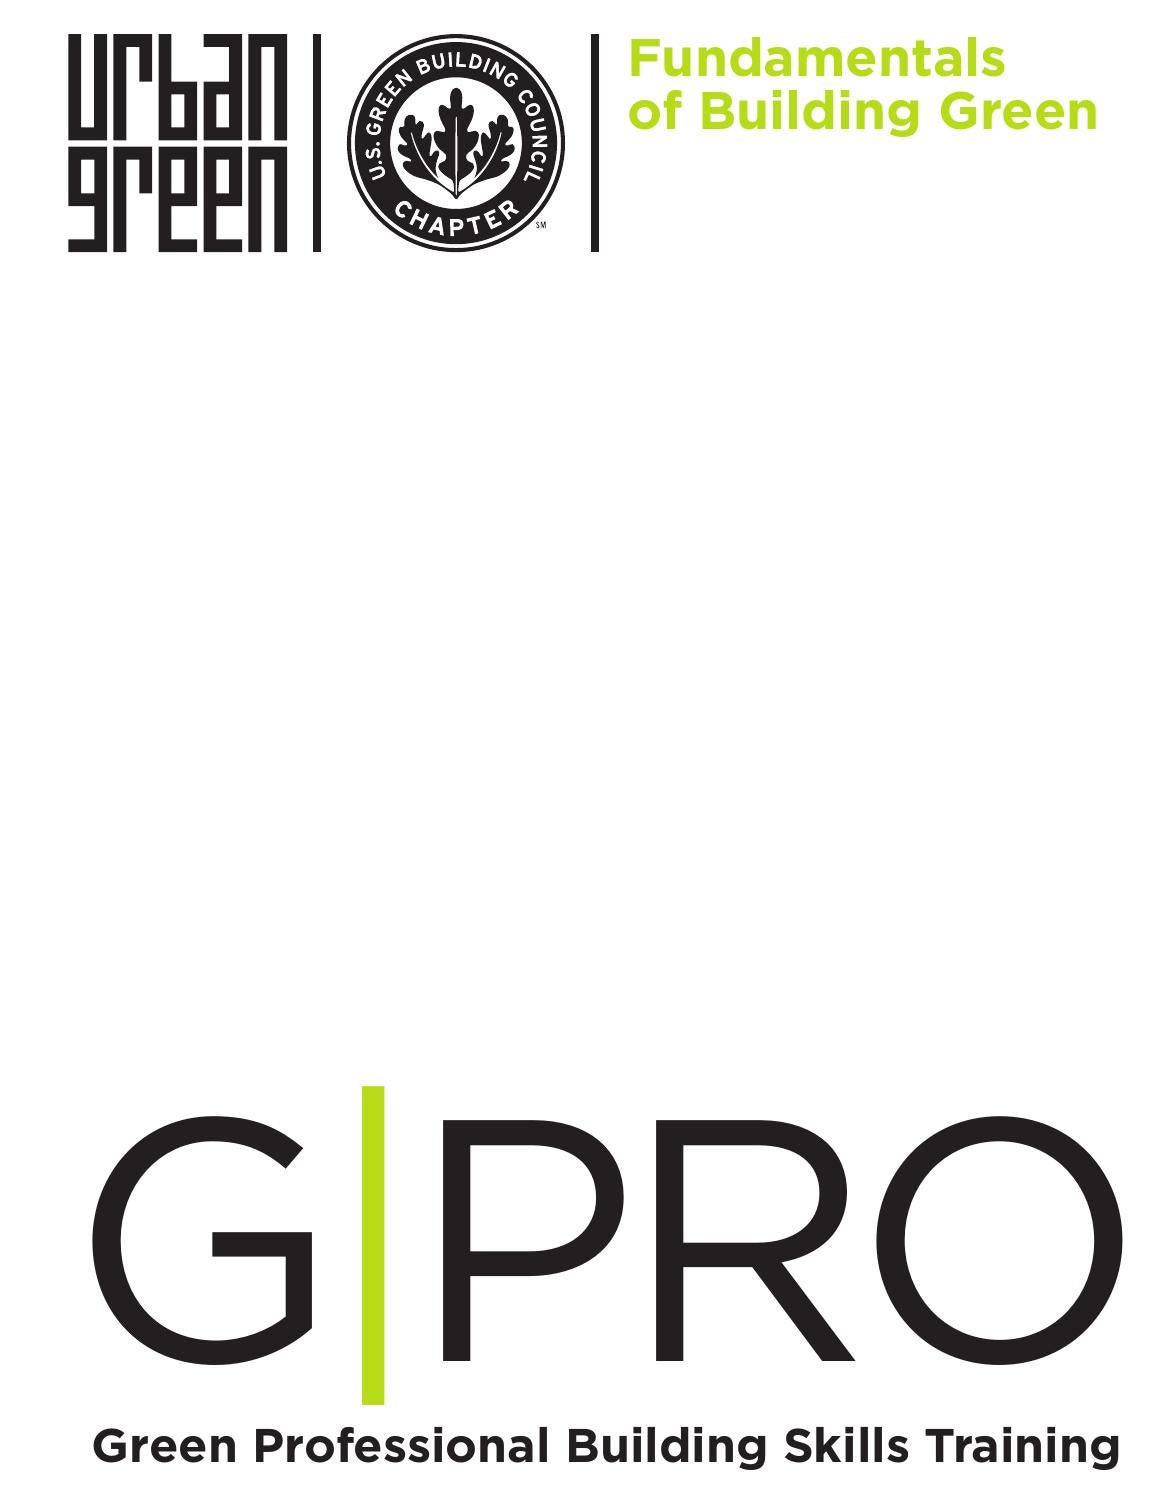 Sample Chapter: GPRO Fundamentals of Building Green by